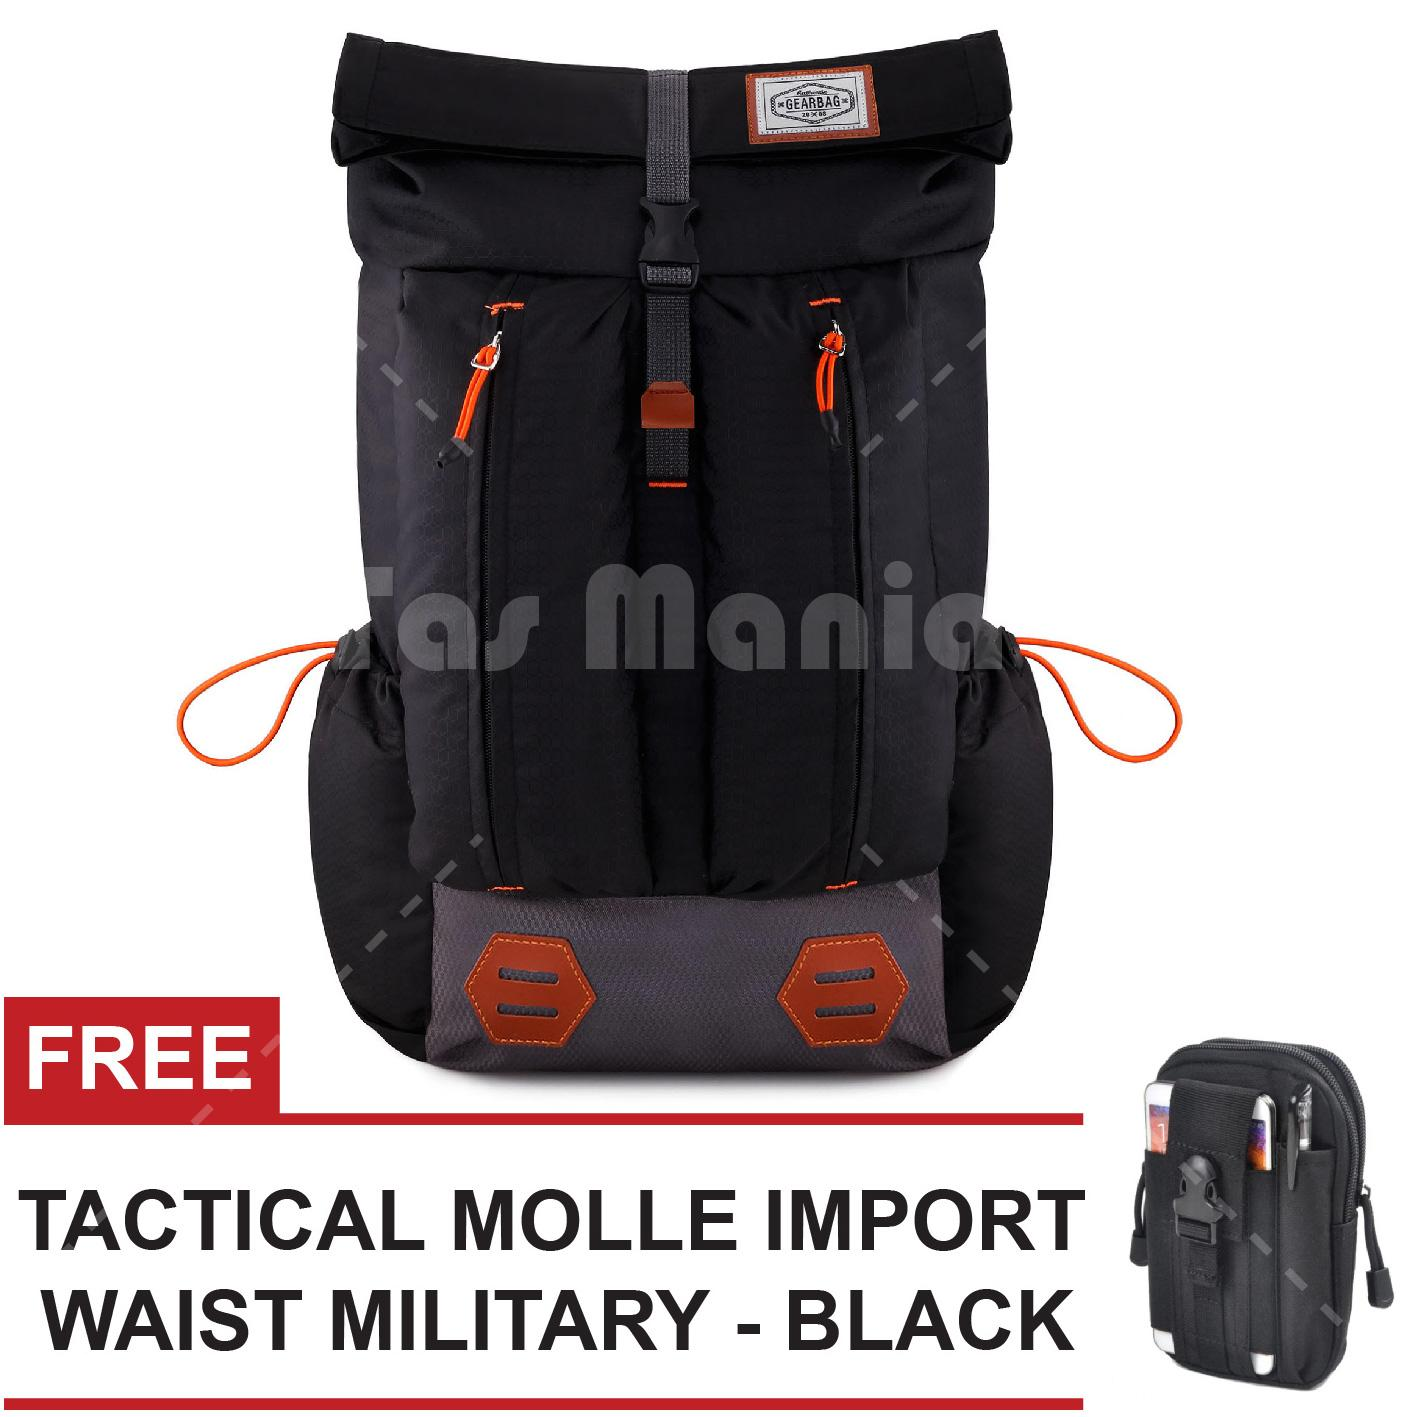 Tas Ransel Pria Gear Bag Mount Everest - Adventure Tas Laptop Backpack - Jet Black + FREE Tas Selempang Tactical Molle IMPORT Waist  Military Promo Murah Kantor Kuliah Tas Gunung Hiking Eiger Rei Consina North Face Deuter Termurah Terlaris Best Seller